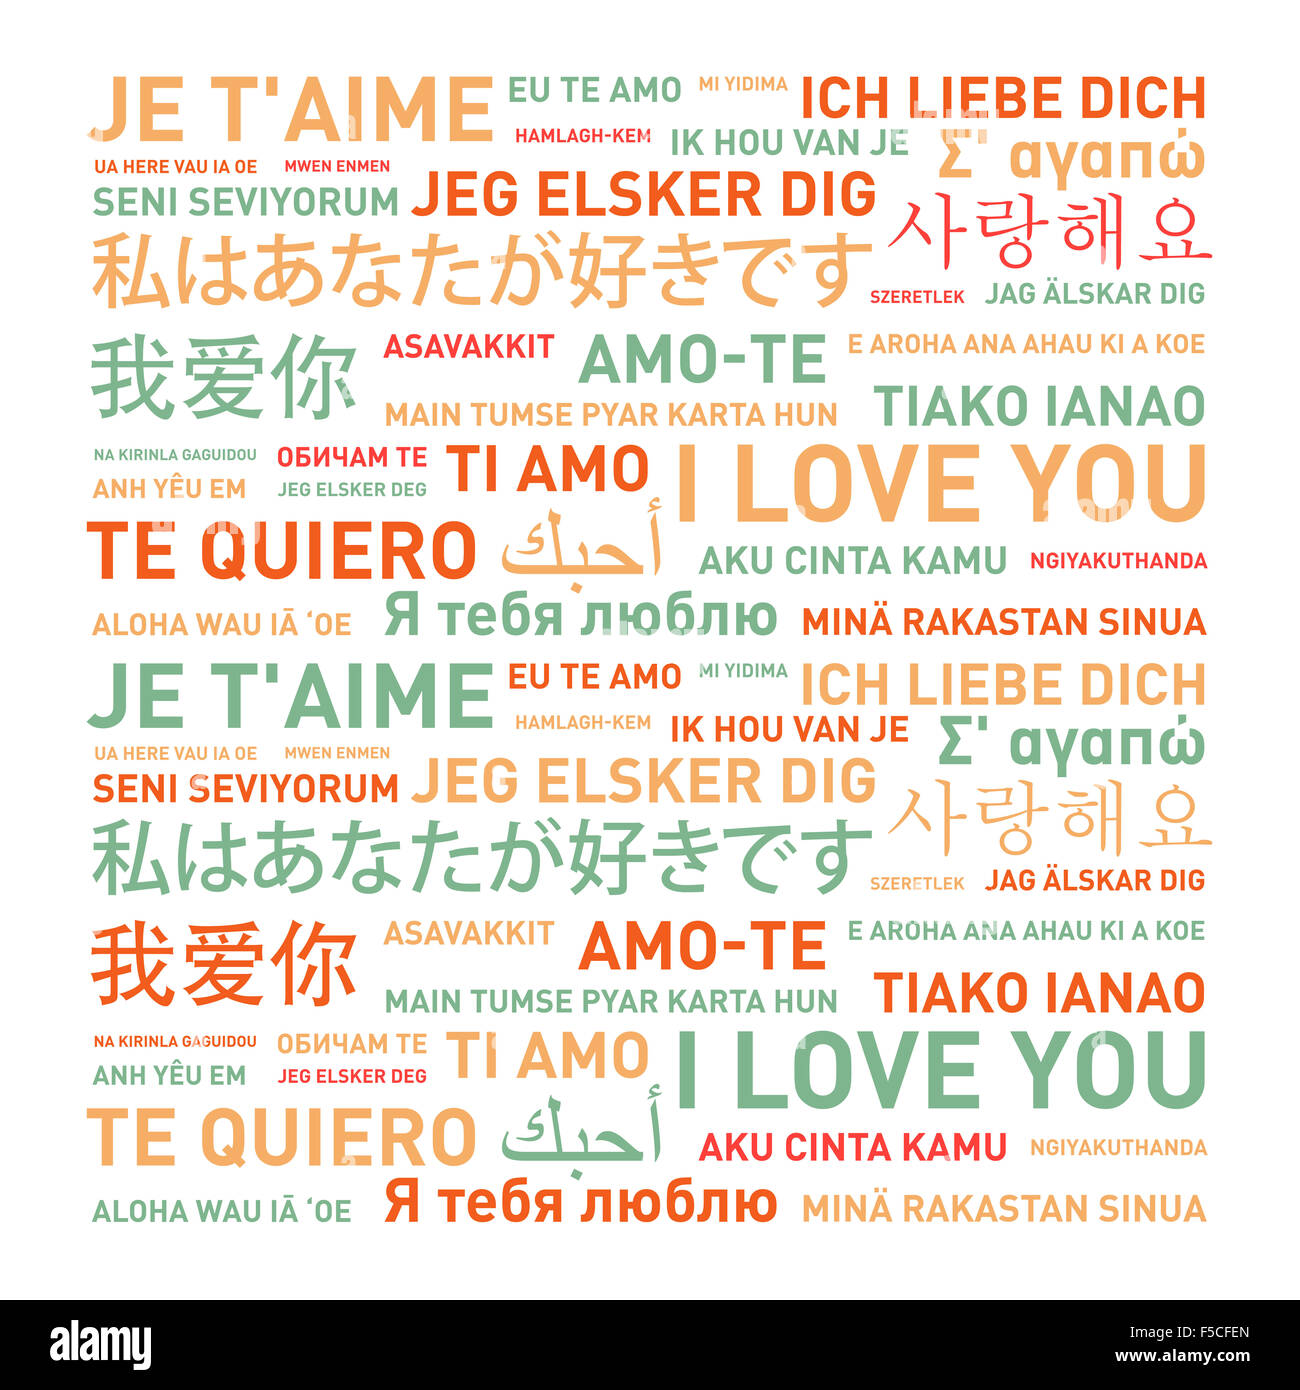 I Love You Card Translated In Different World Languages Stock - How many types of languages are there in the world